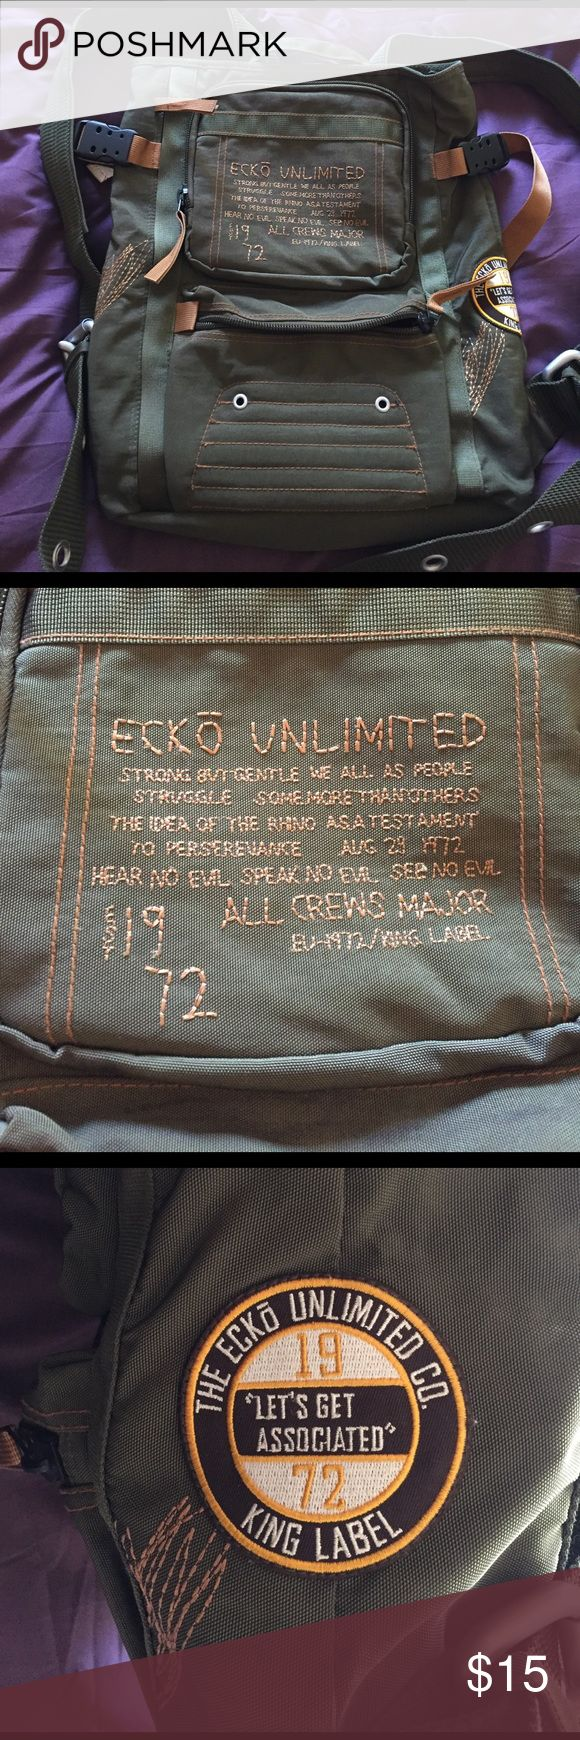 Google themes ecko - Ecko Unlimited Olive Green Backpack Backpack Straight Stop Zipper Multiple Compartments And